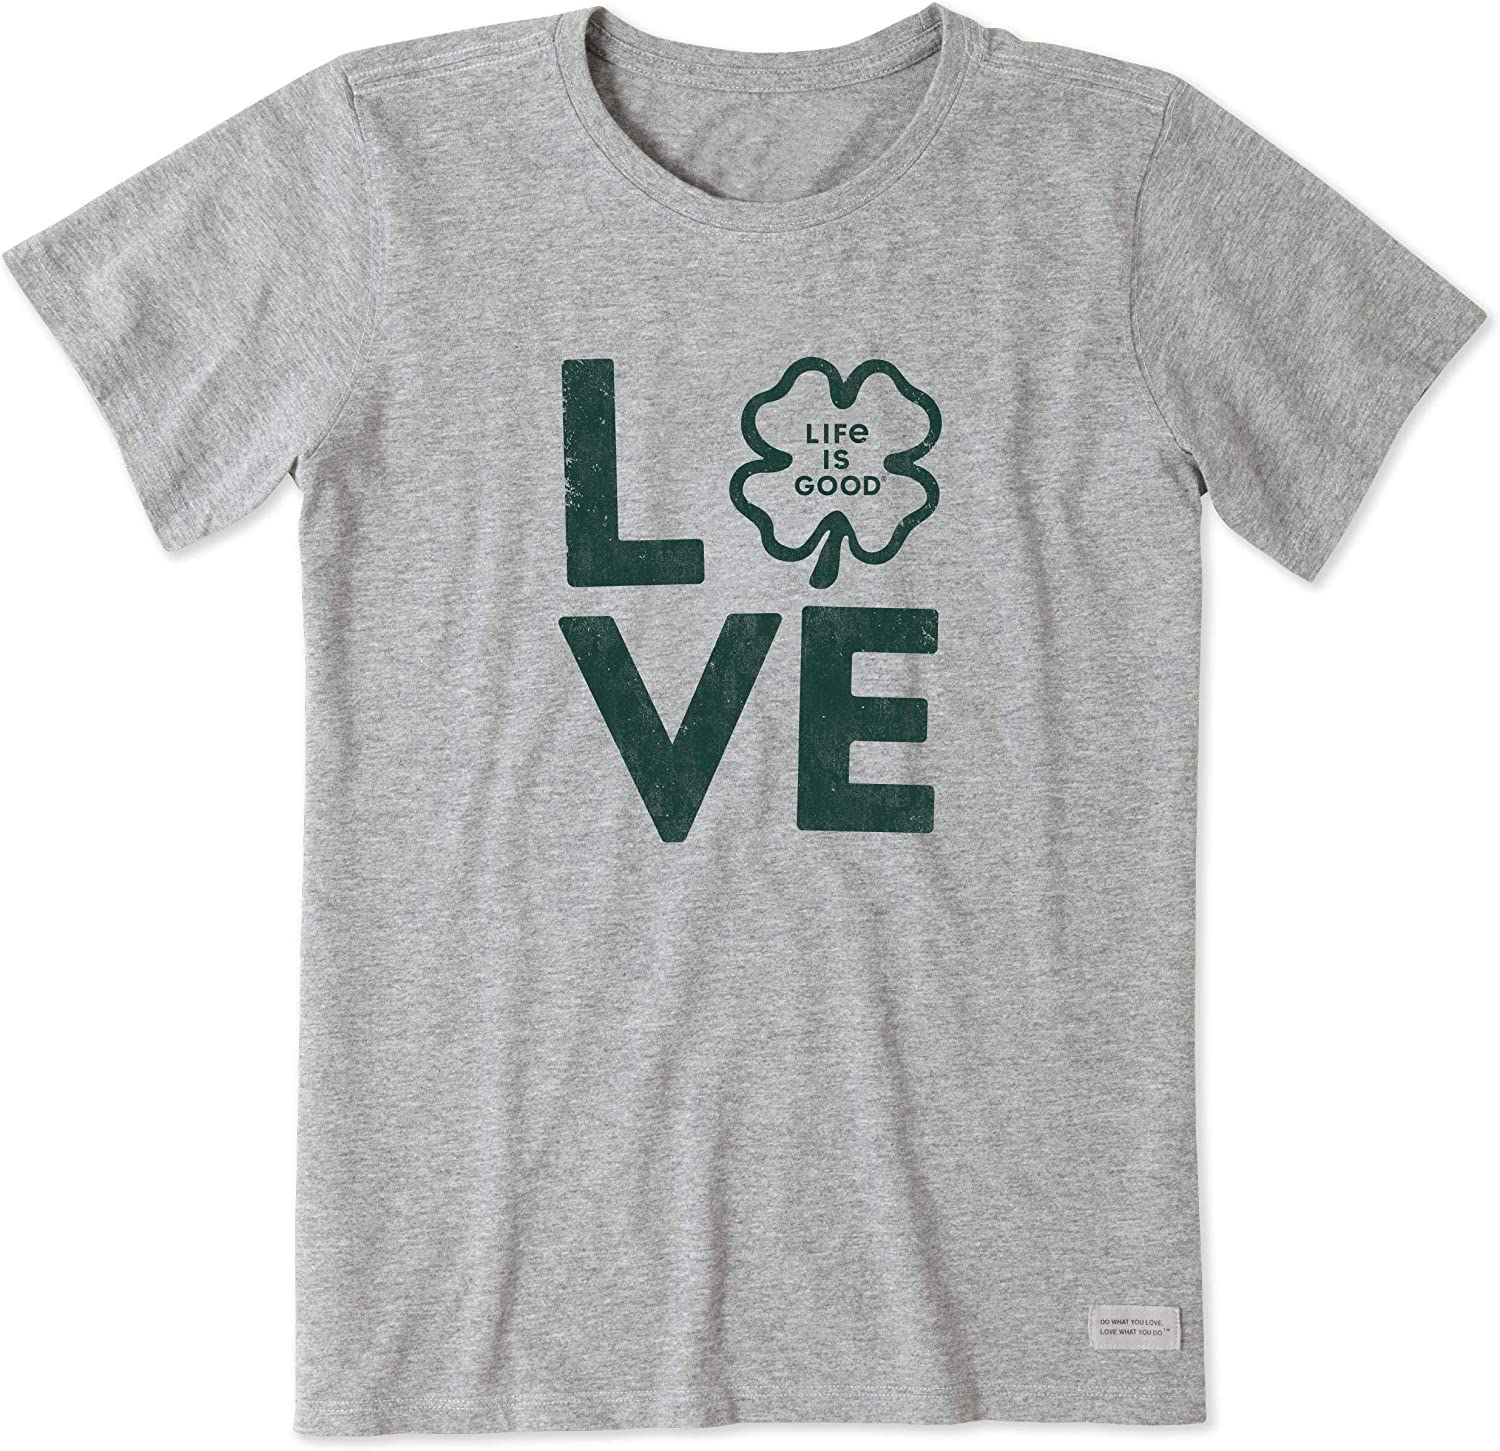 Life is Good. Womens Crusher Tee: St Patricks Love, Heather Gray 91yKwlcR5SL